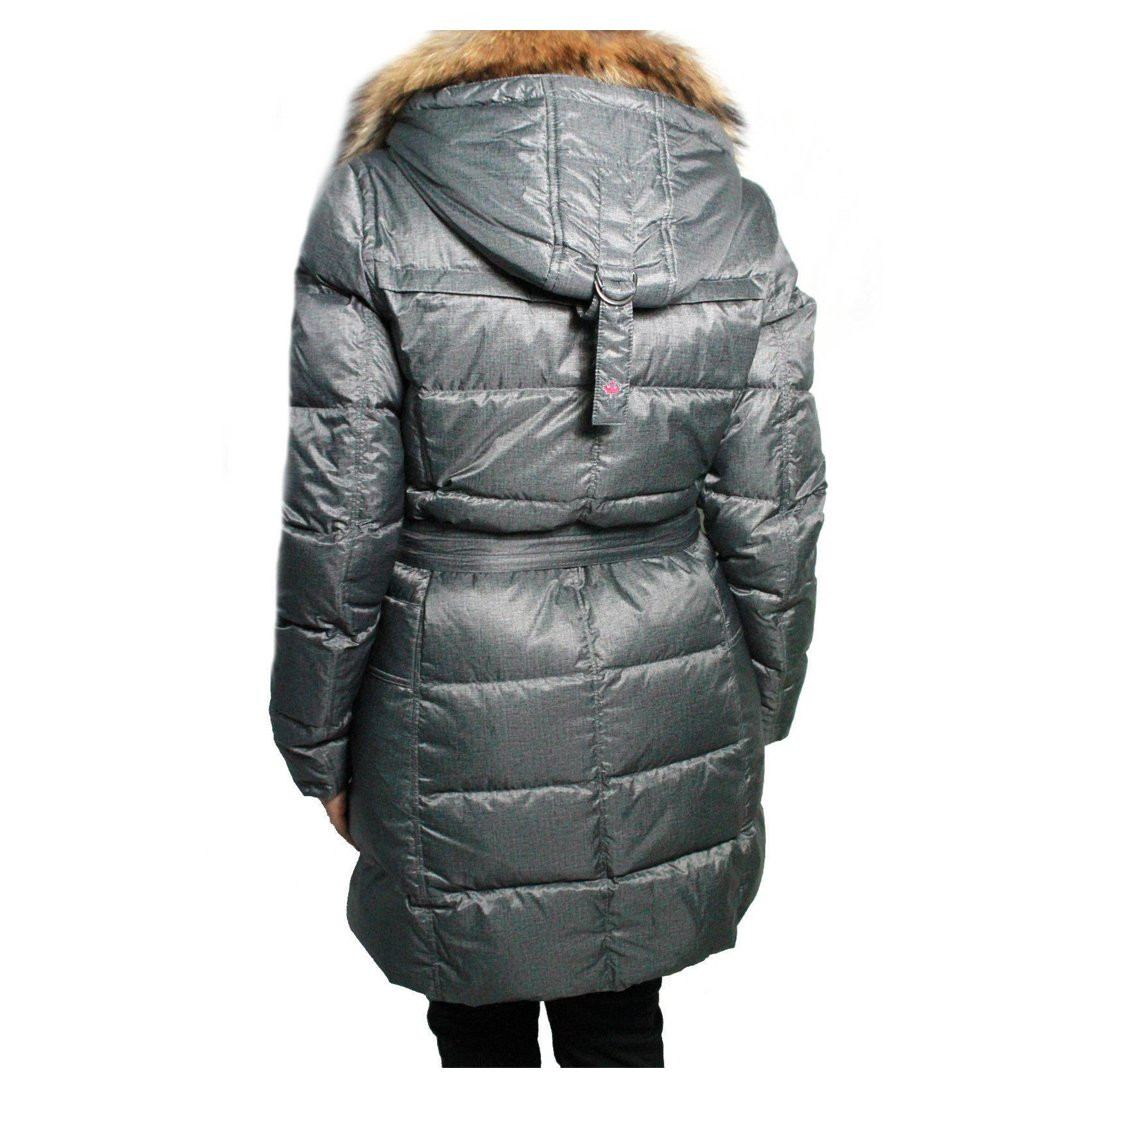 CANADIENS Giaccone Donna MOD CassidyD Long Jkt CT0524 TG 44